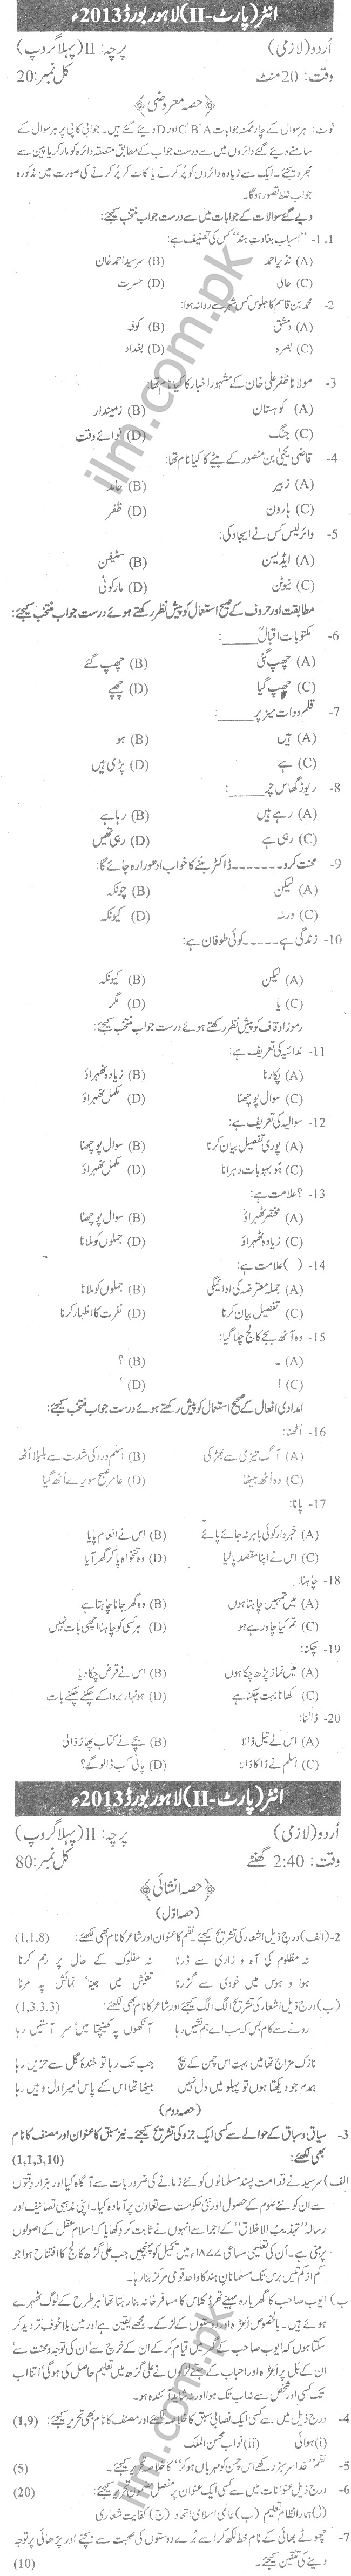 Lahore Board Inter Part 2 Urdu Past Papers 2013